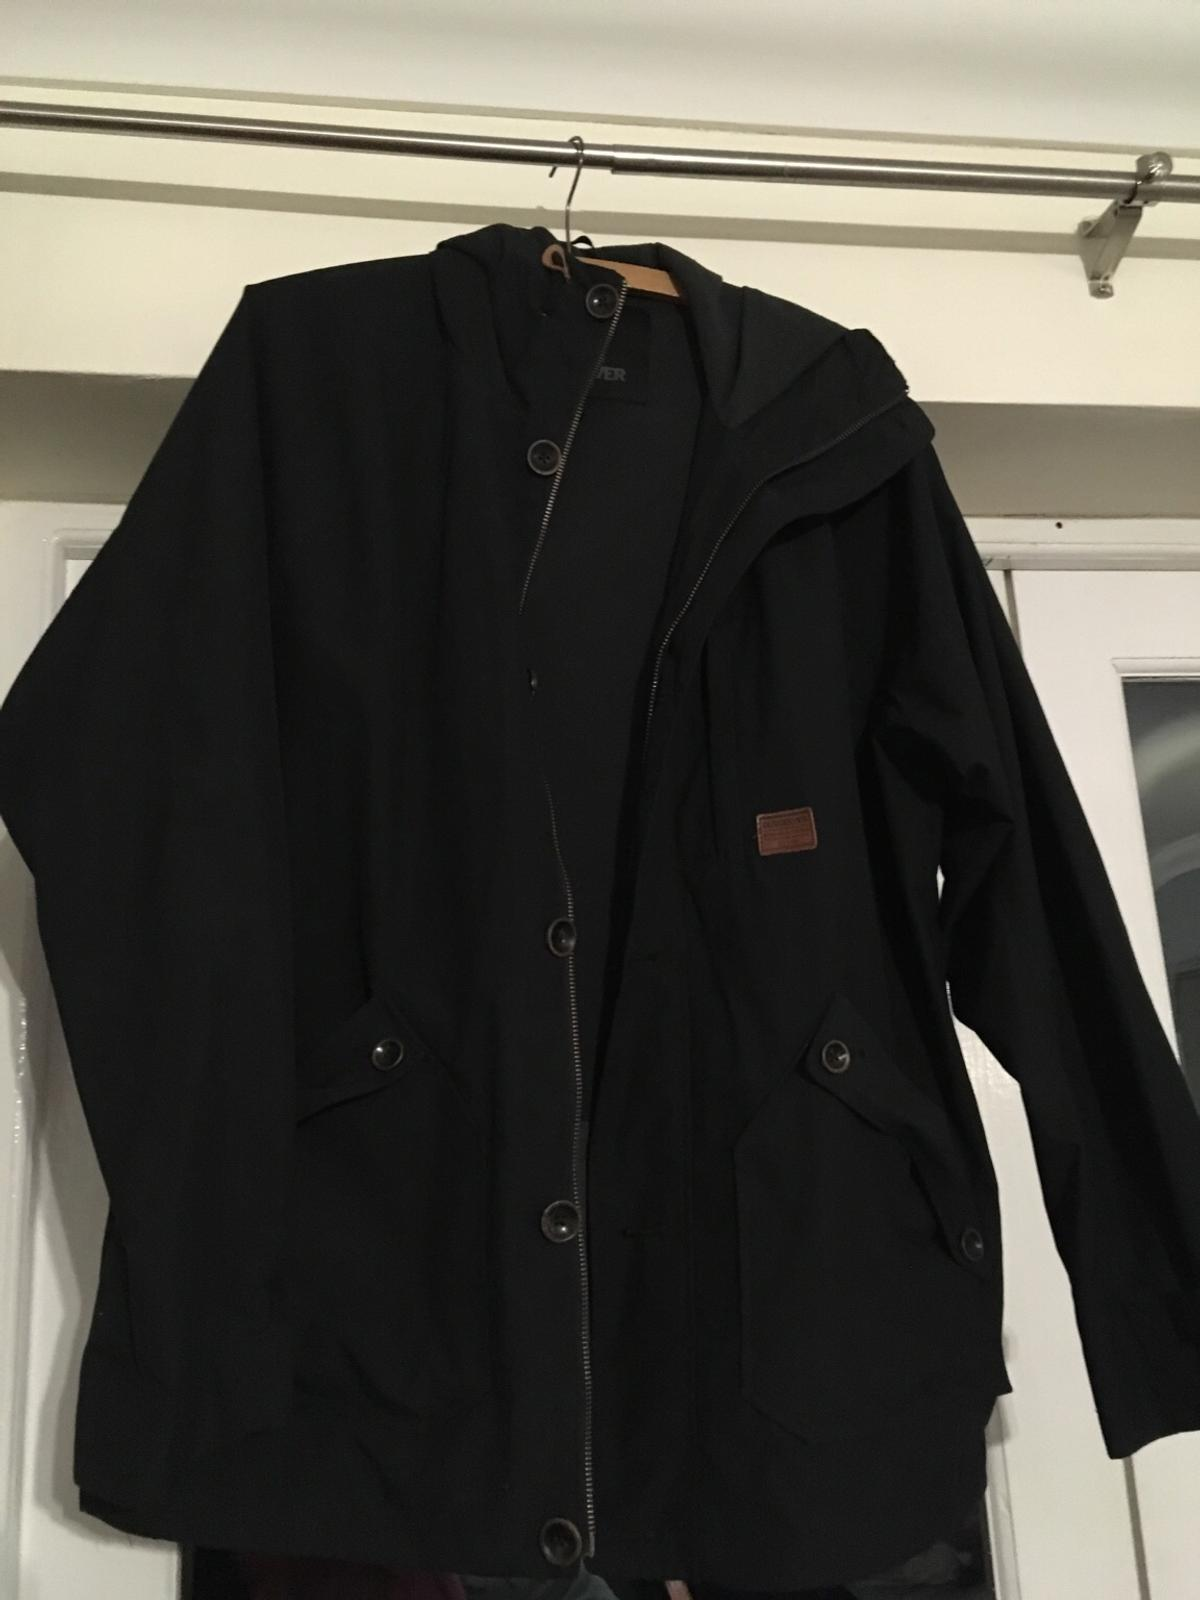 Quicksilver men's coat in DY8 Dudley for £40 00 for sale